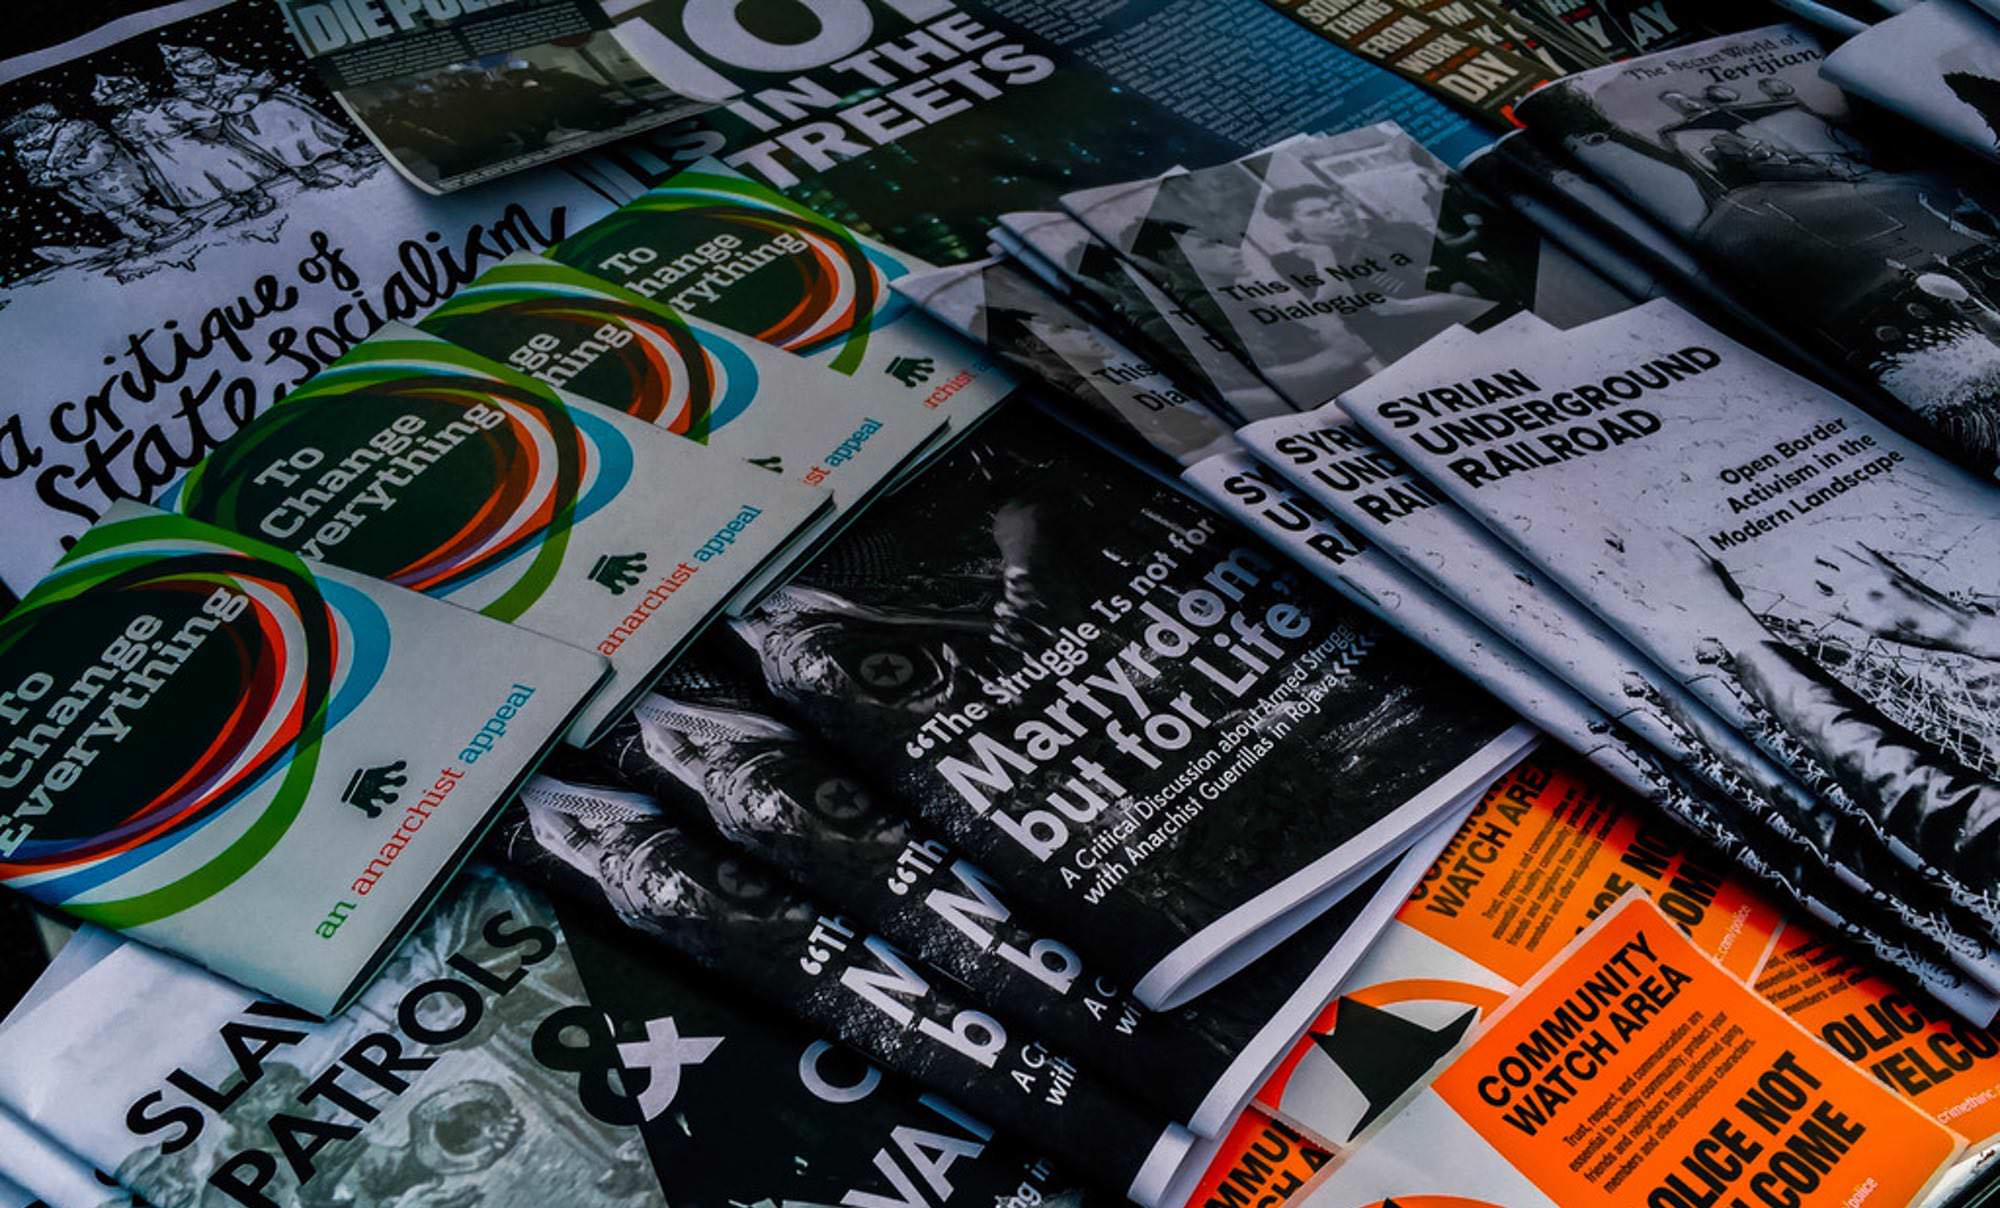 CrimethInc. zines, posters, stickers